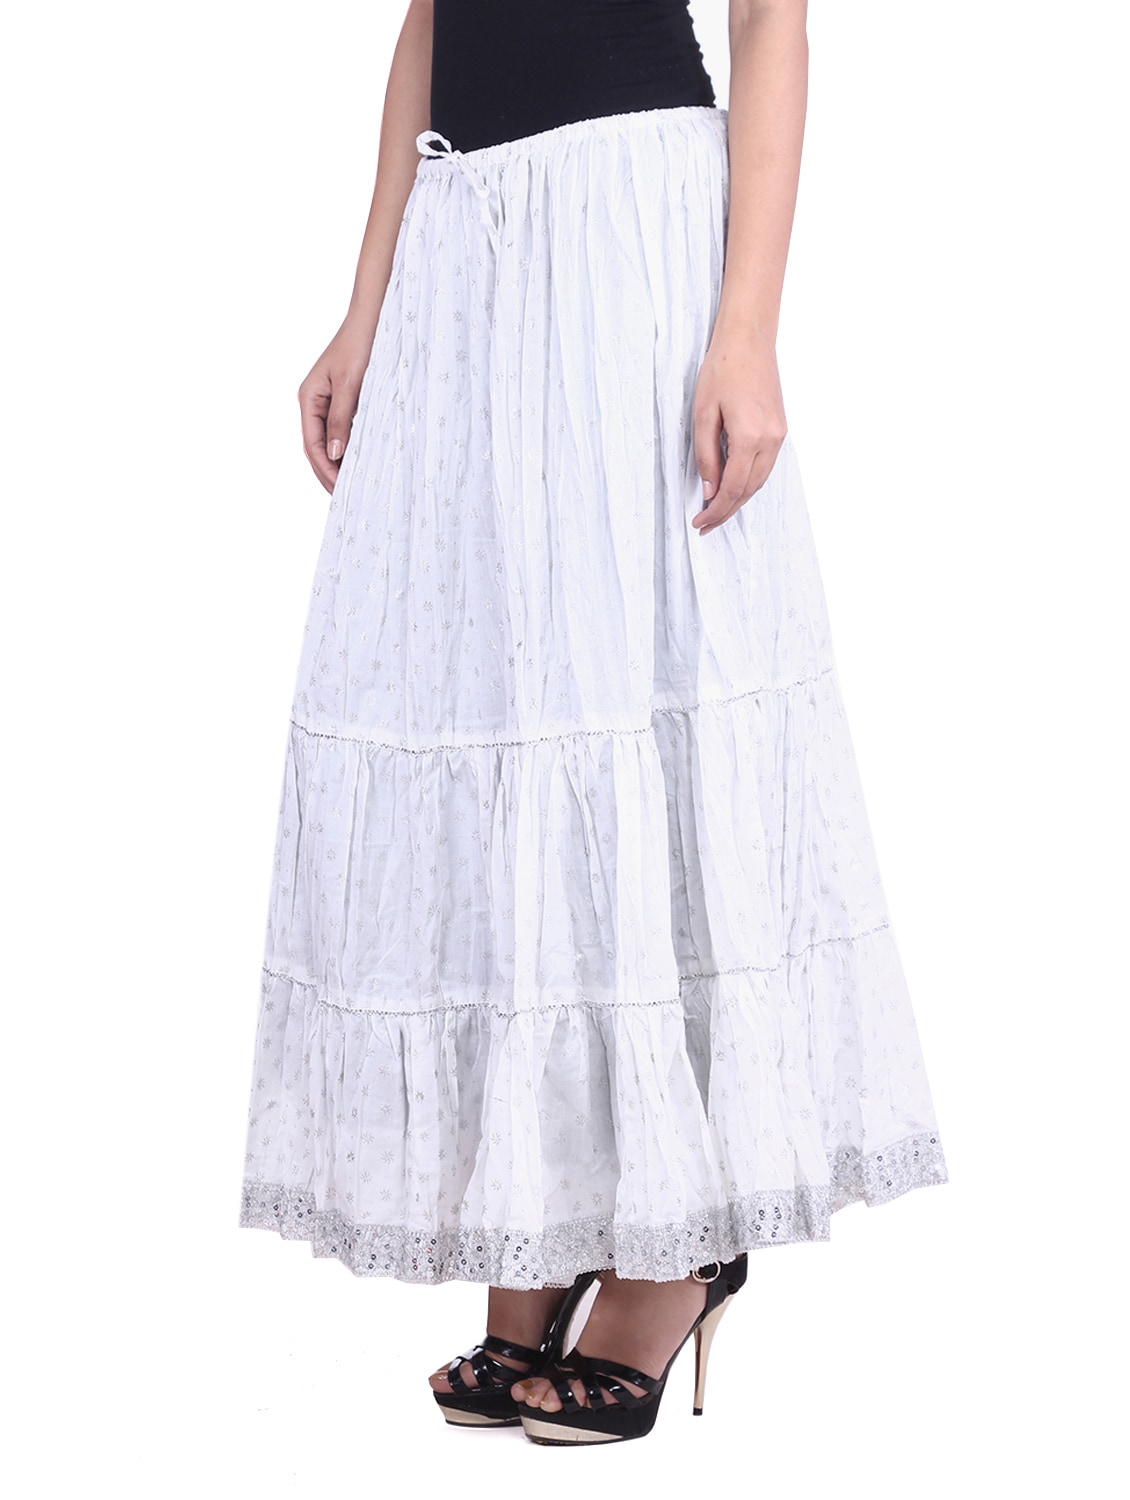 0d1a165569 White Cotton Printed N Sequined Gathered Skirt